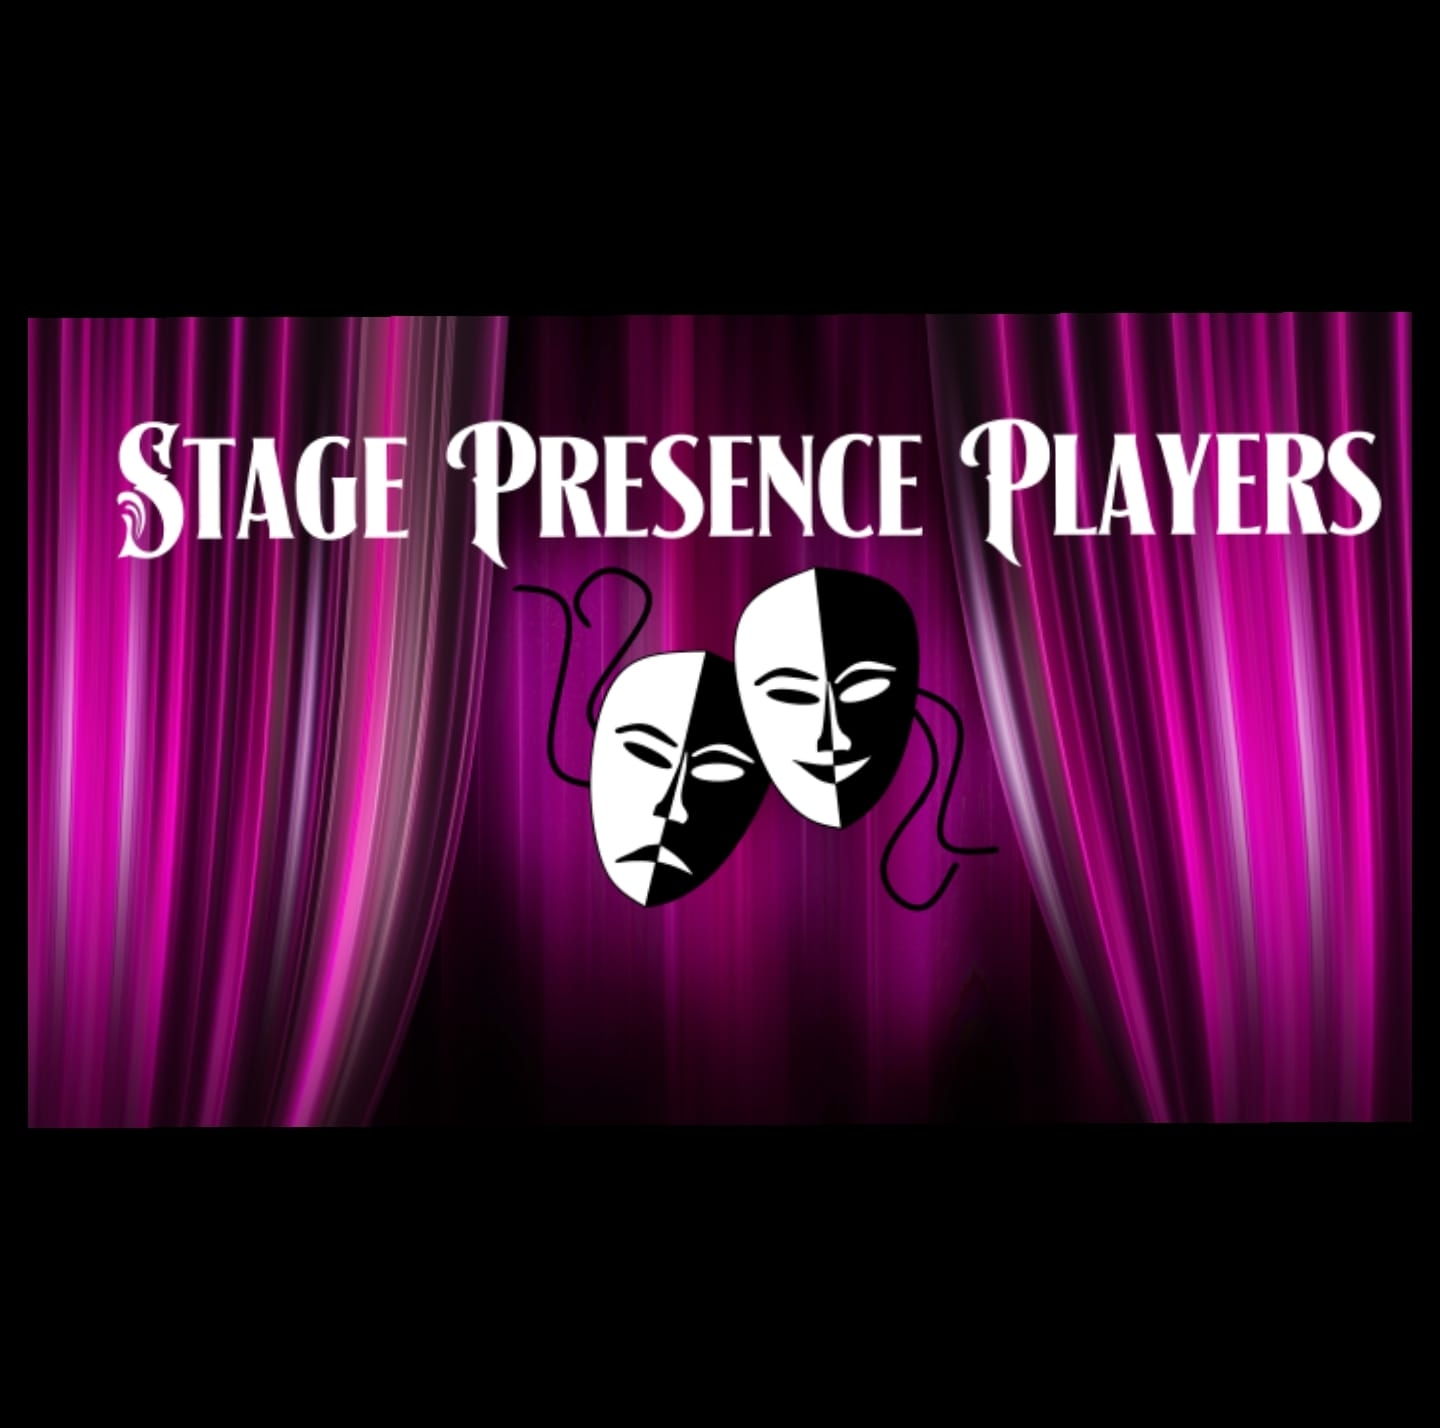 Stage Presence Players